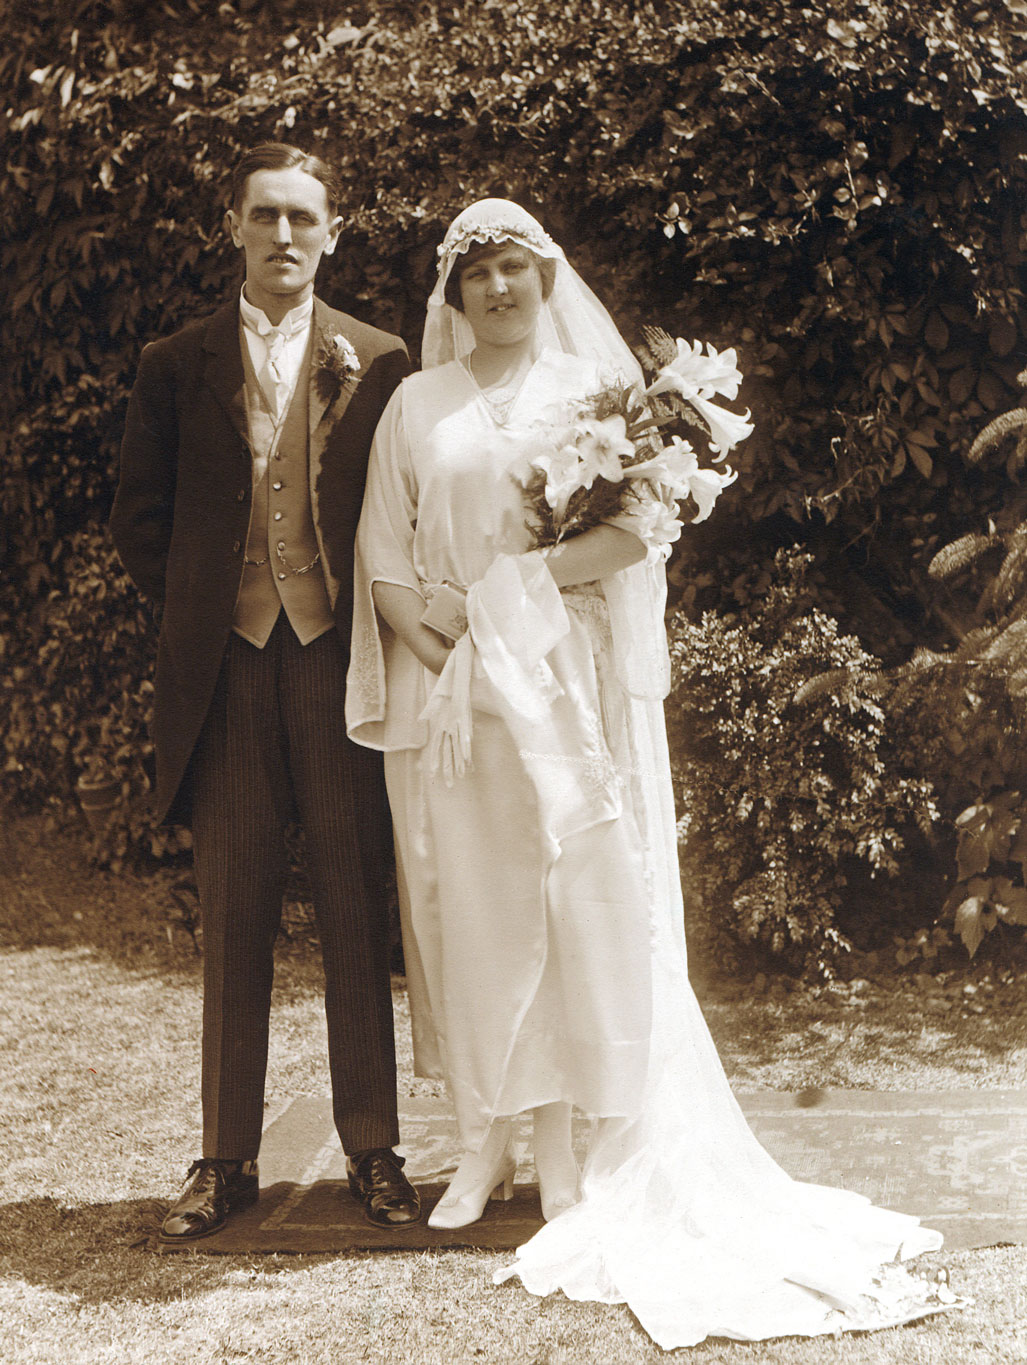 Victorian-Edwardian-People--Wedding-Couple-000006441263_Medium.jpg